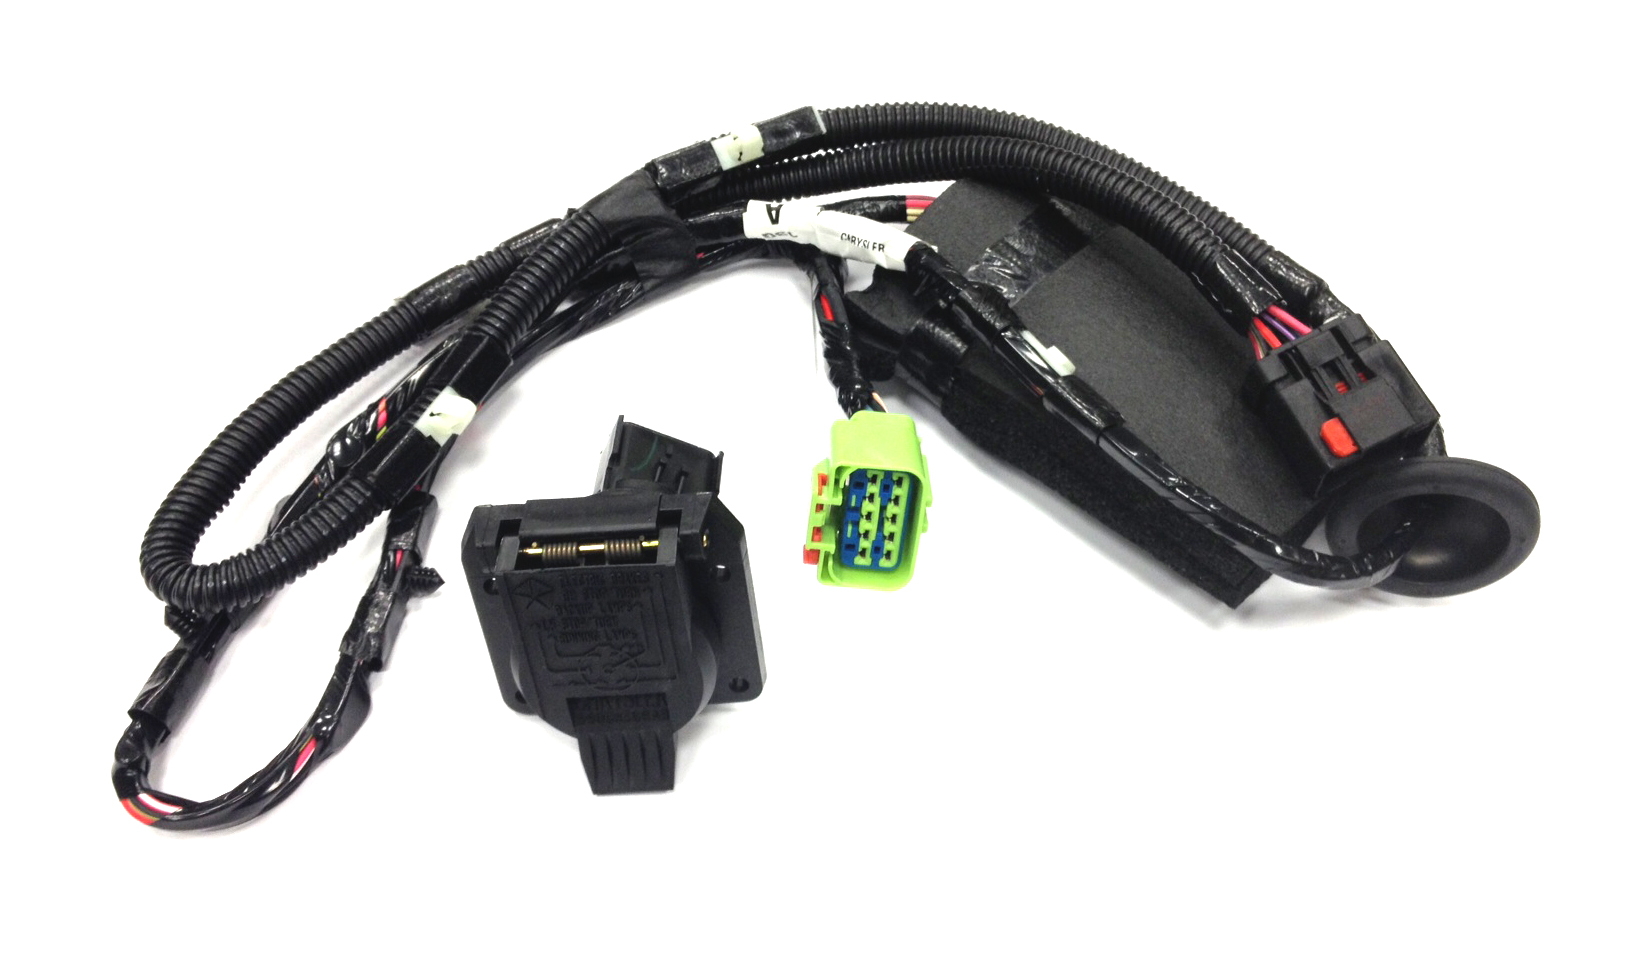 wj grand cherokee hitch receiver wiring harness 82206958. Black Bedroom Furniture Sets. Home Design Ideas